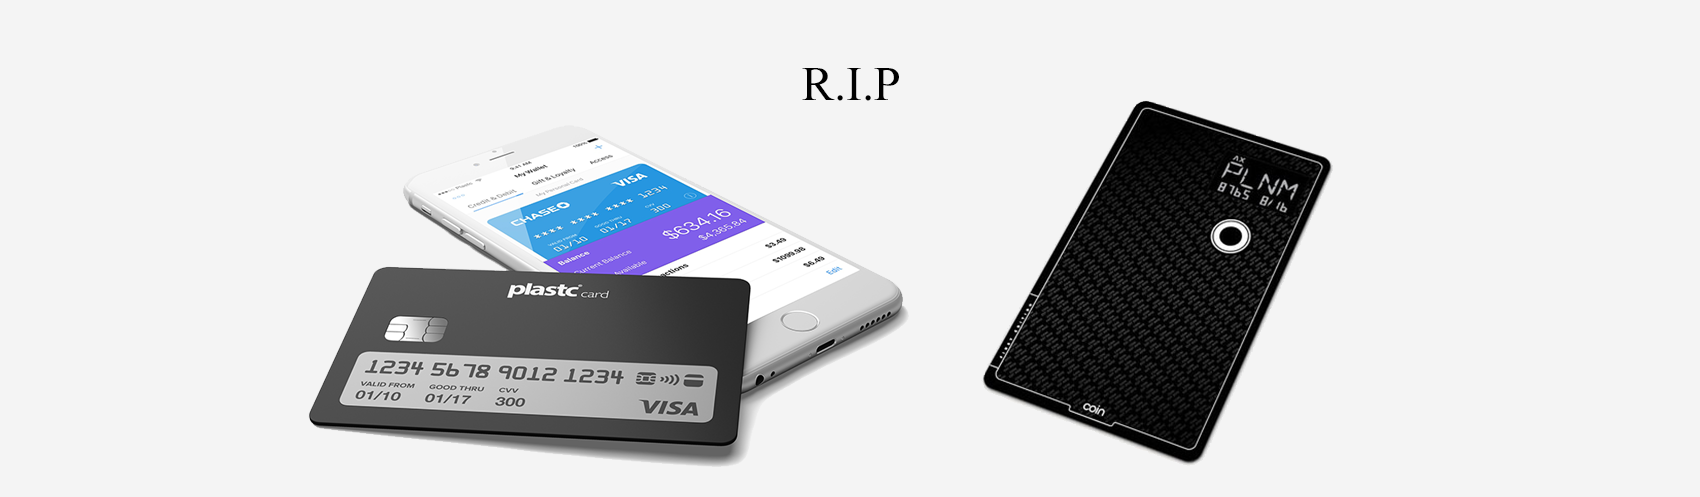 /r-i-p-plastc-and-coin-death-of-the-smartcard-industry-bc243cec913c feature image